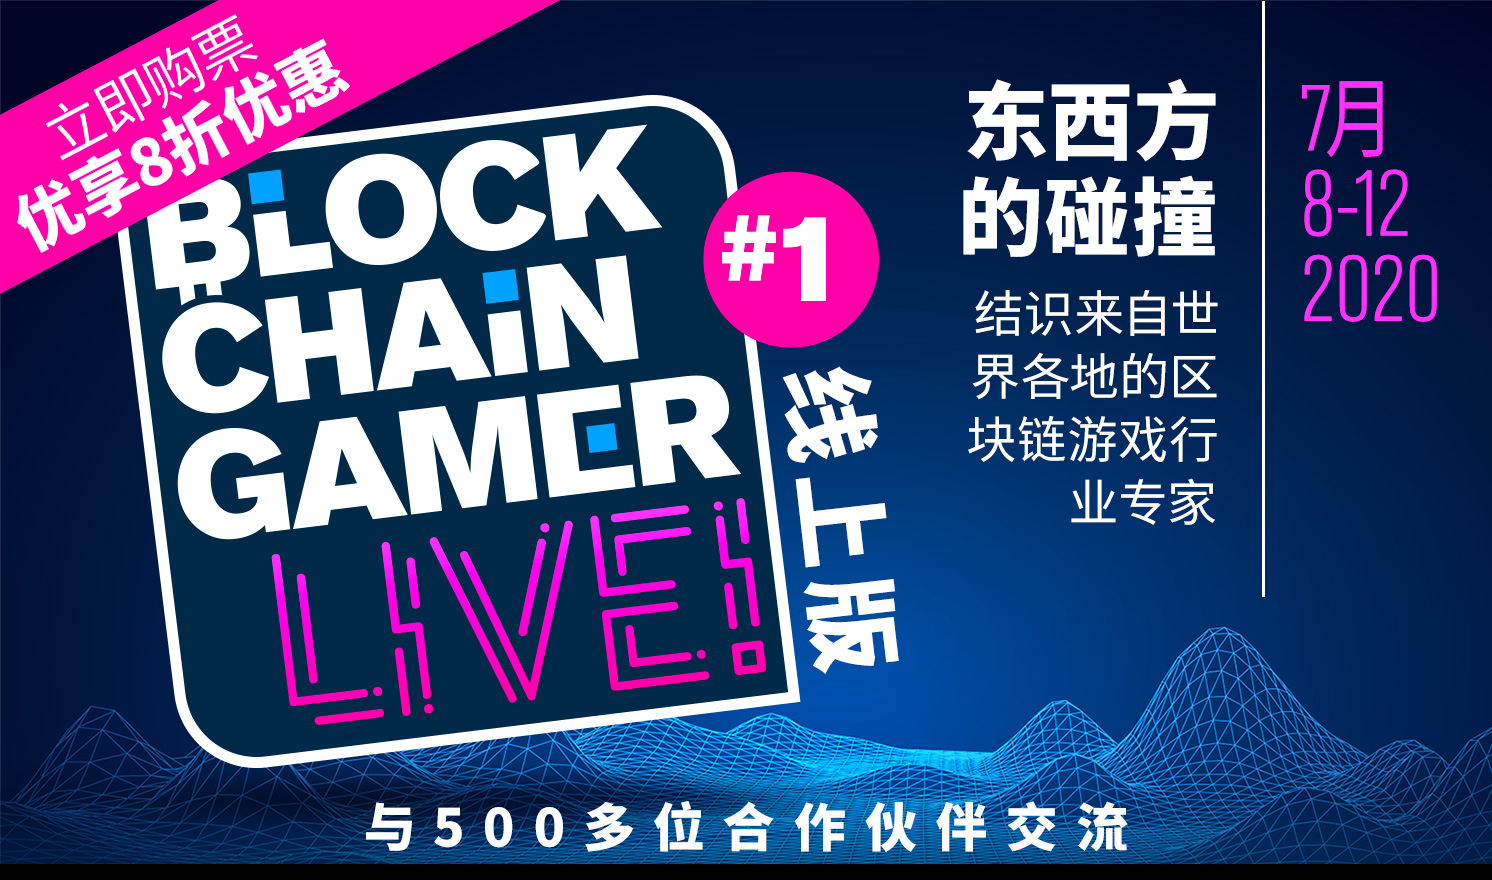 Blockchain Gamer LIVE! Digital #1(2020-07-13)